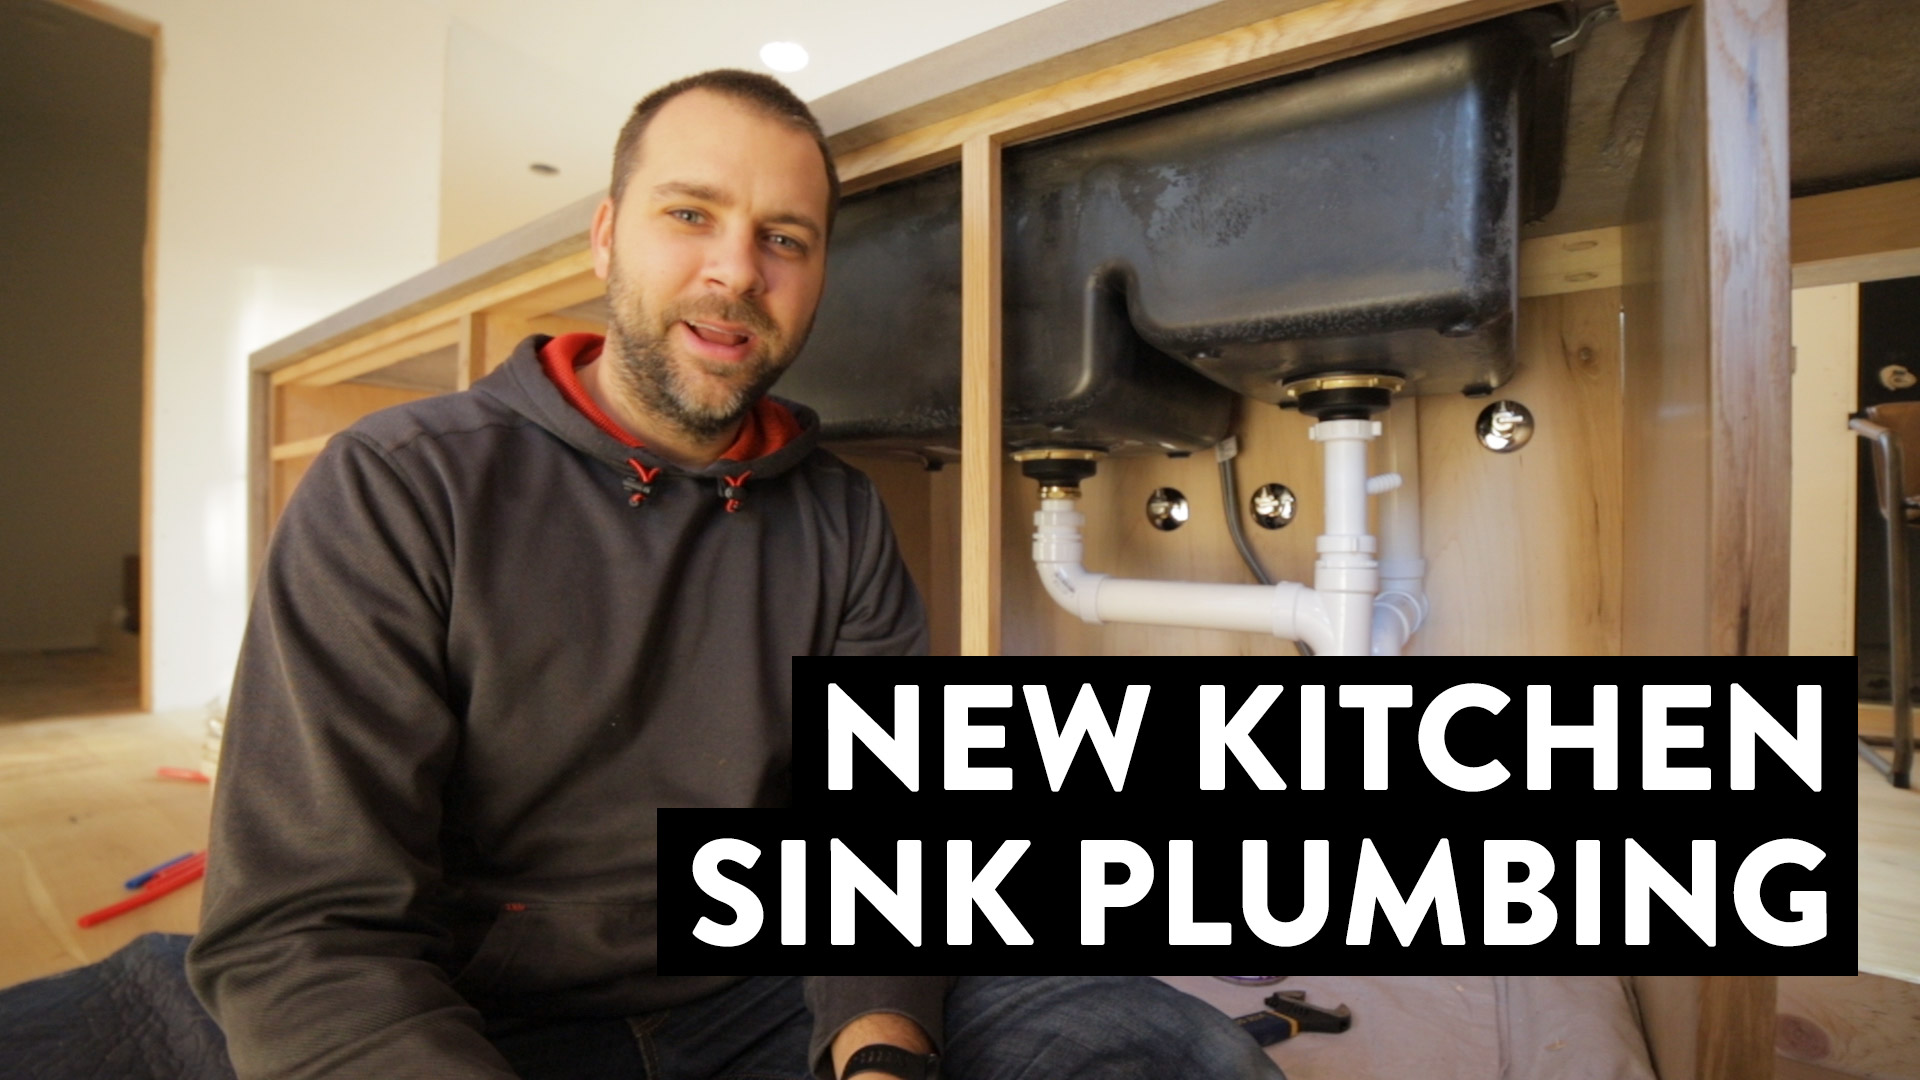 Installing A New Kitchen Sink Drain And Dishwasher In My Island | DIY PVC Plumbing